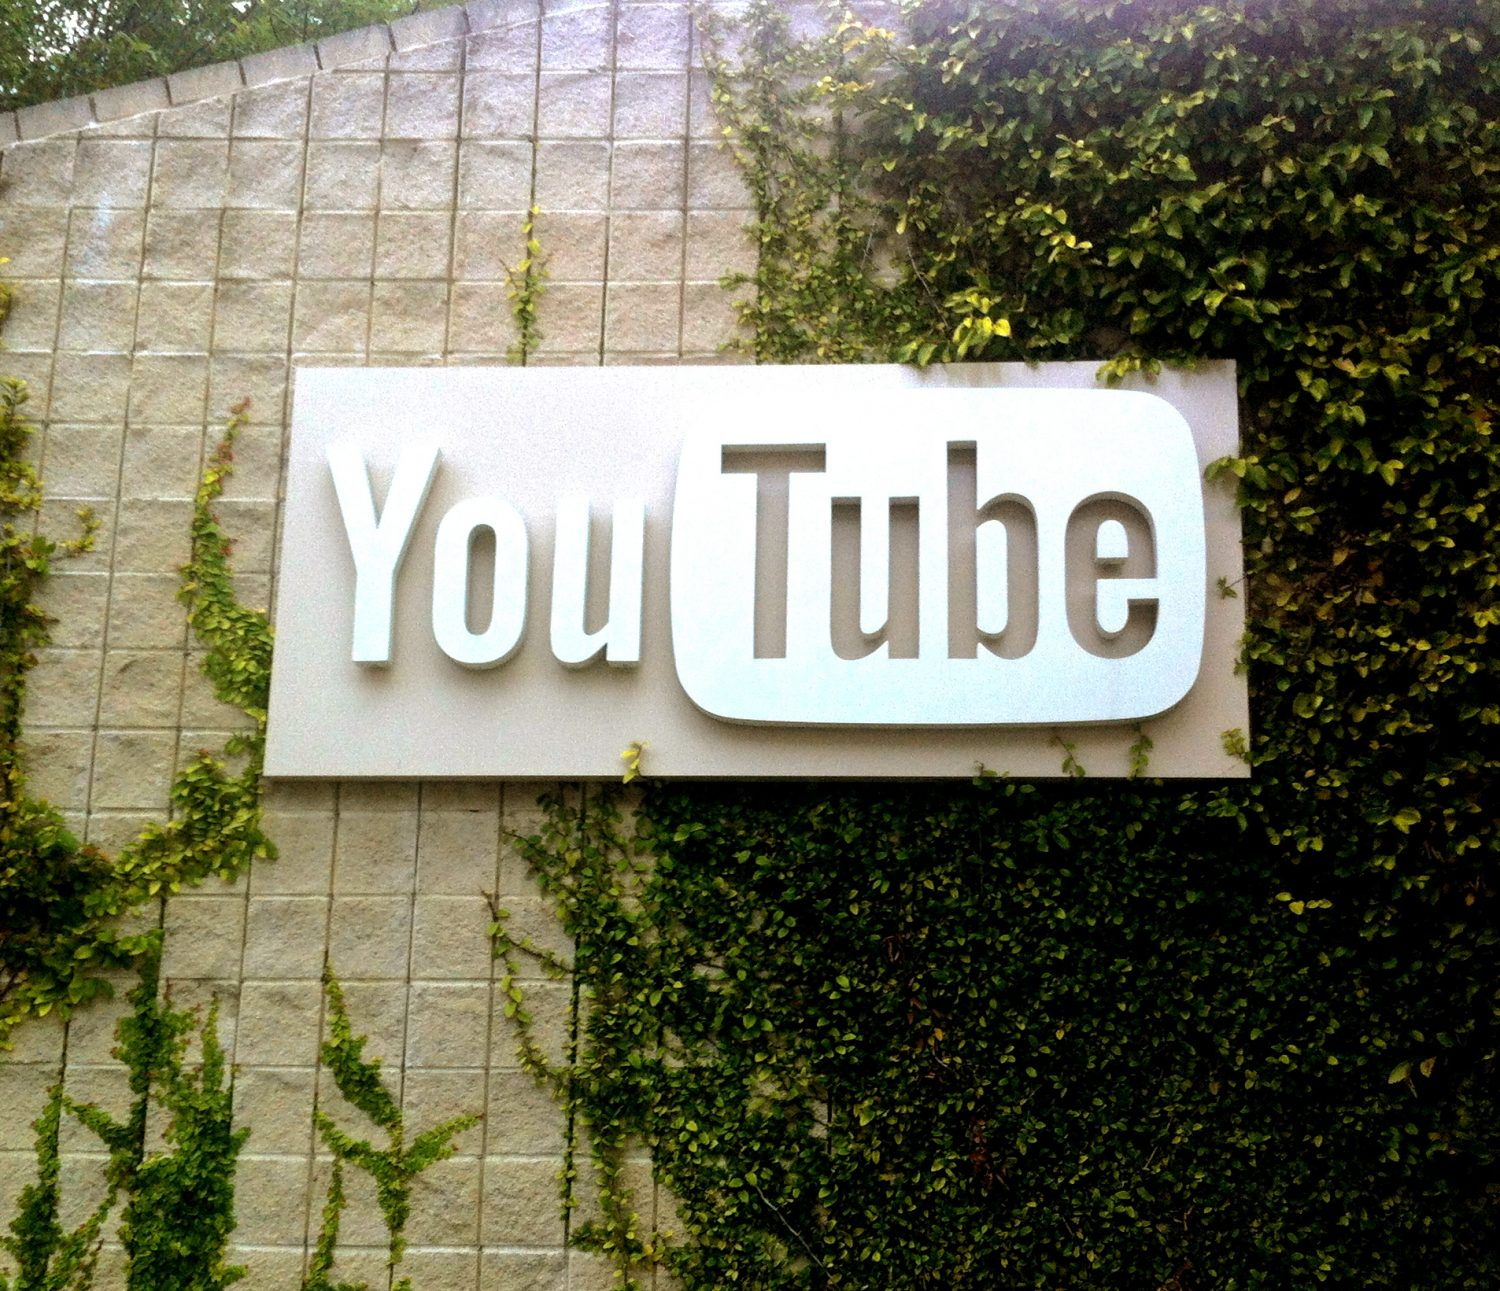 YouTube sign in San Bruno, CA